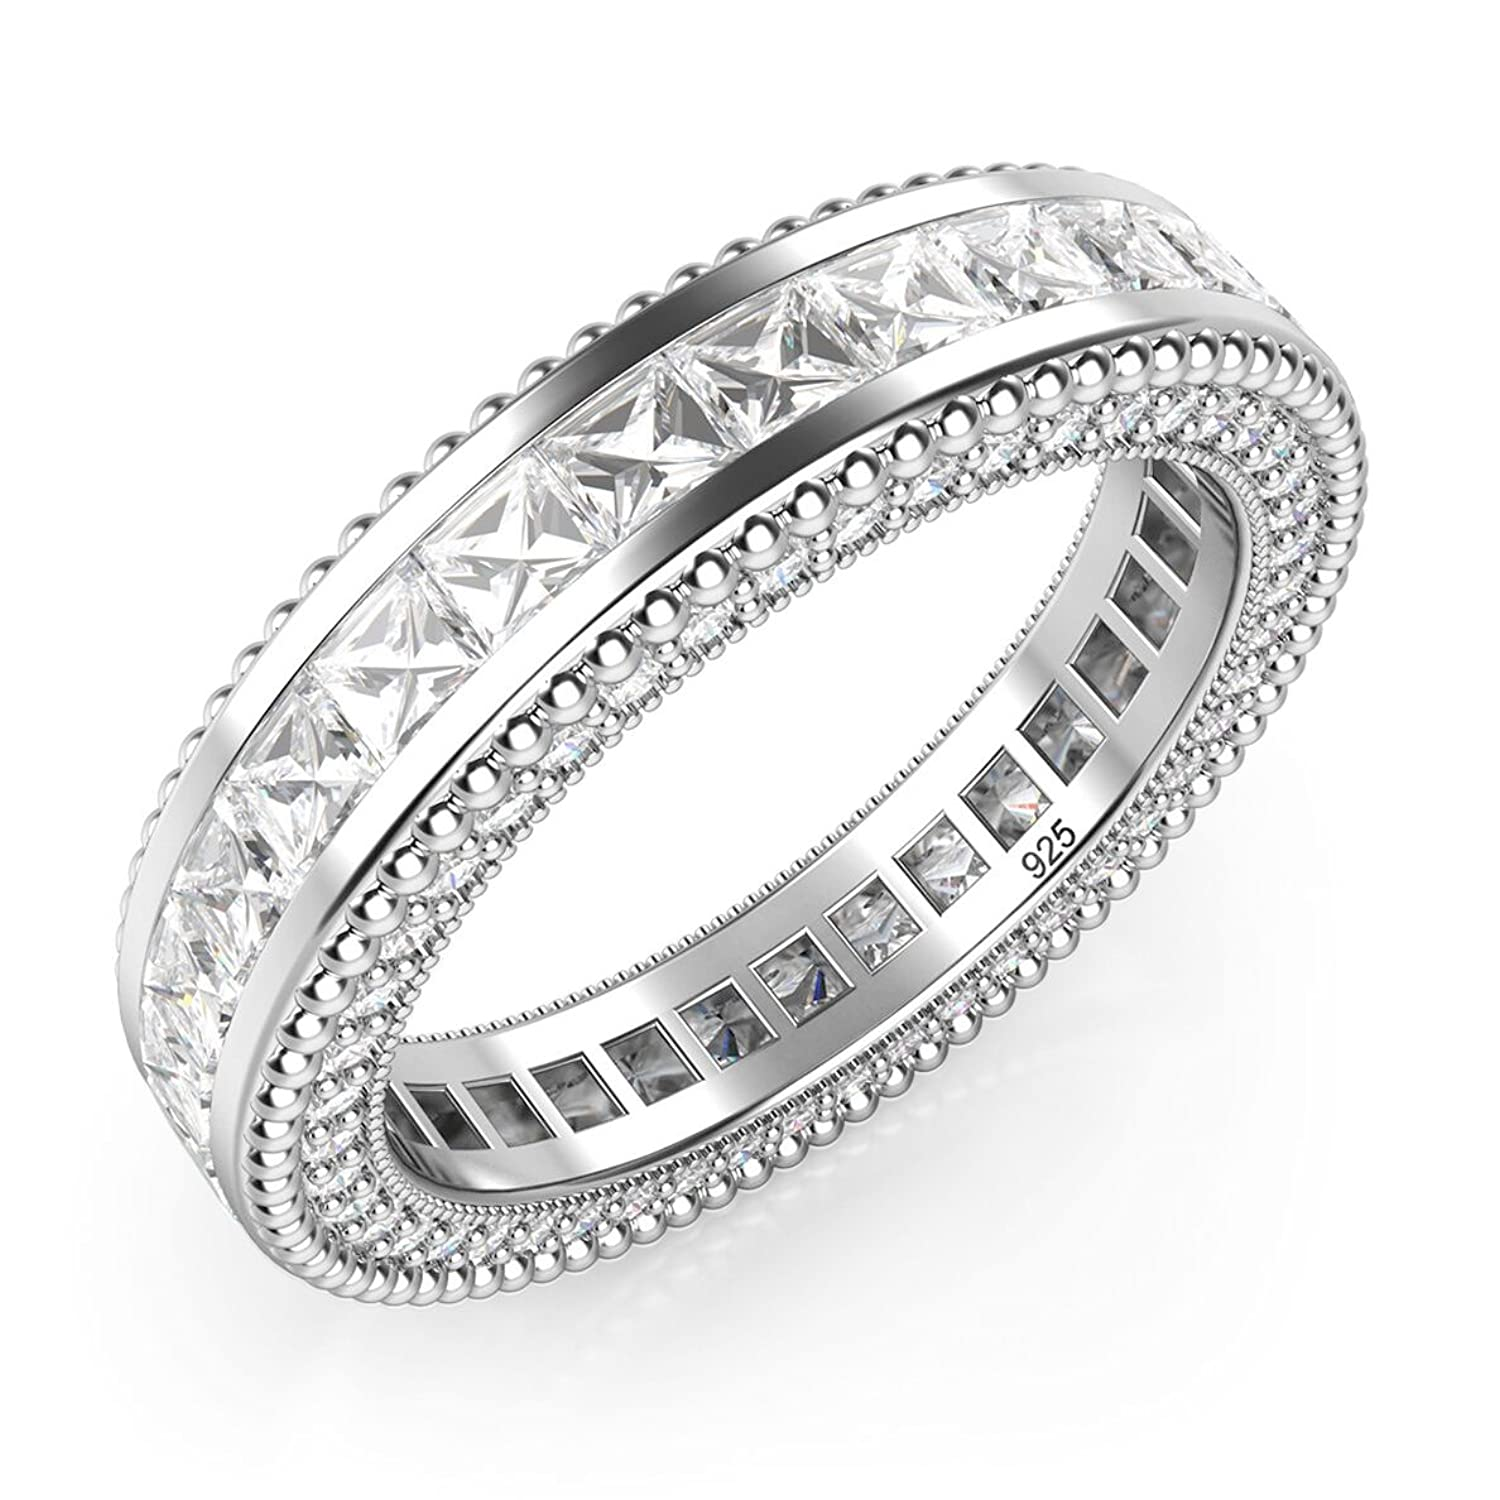 set band zirconia type samuel jewellery h eternity l ring number silver stone full cubic category product sterling webstore bands n rings size